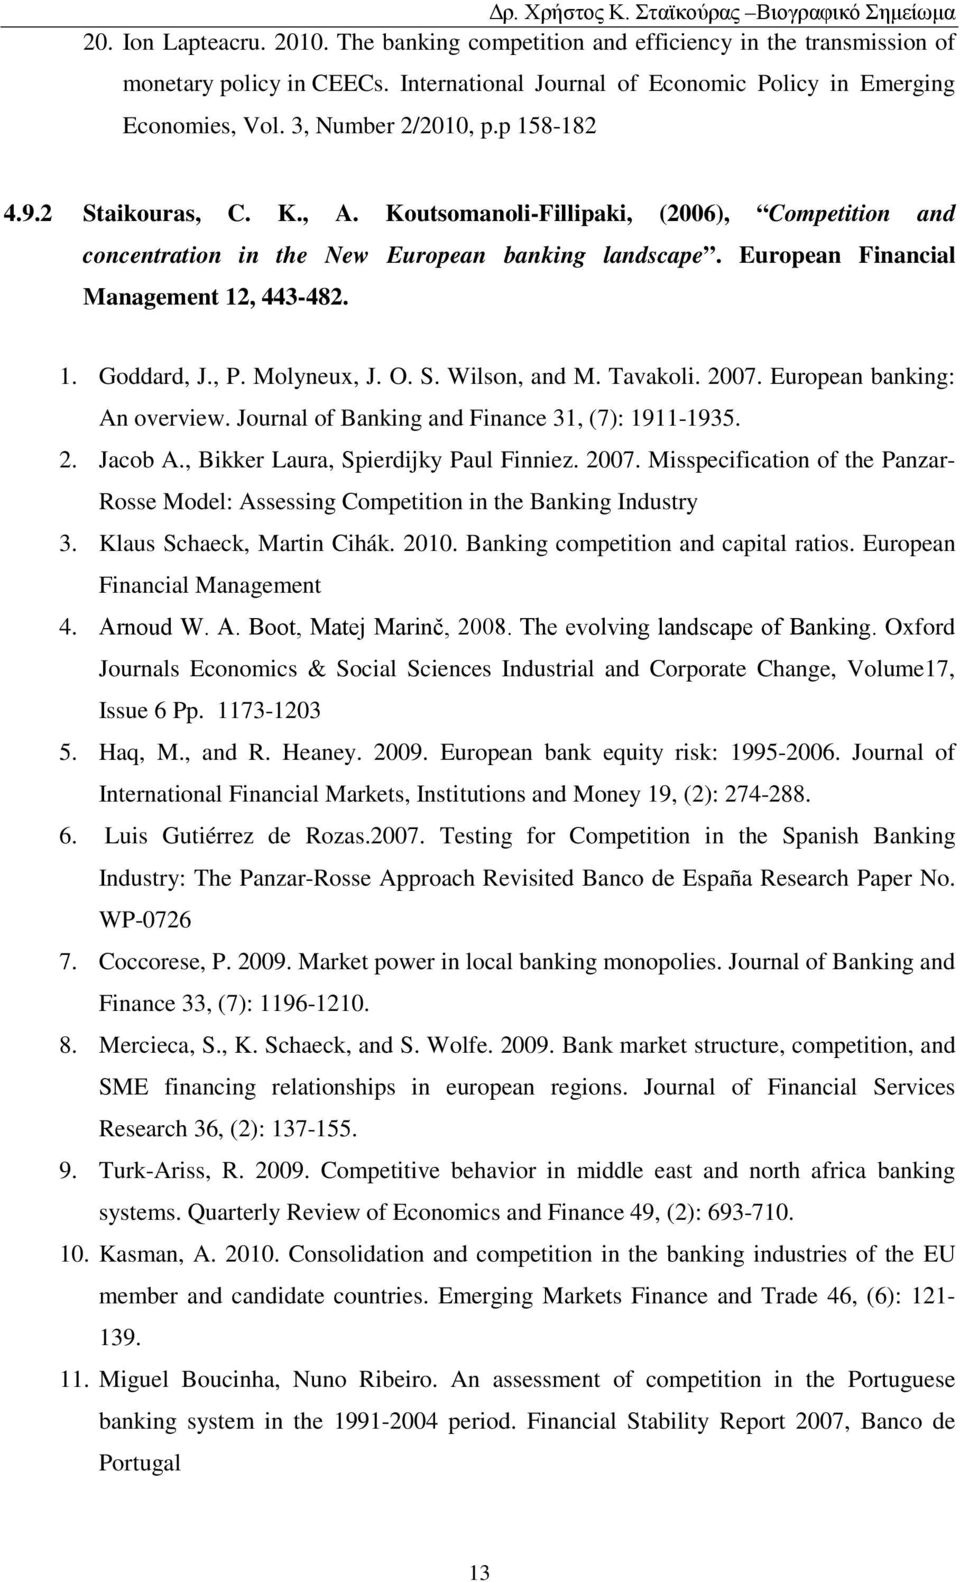 European Financial Management 12, 443-482. 1. Goddard, J., P. Molyneux, J. O. S. Wilson, and M. Tavakoli. 2007. European banking: An overview. Journal of Banking and Finance 31, (7): 1911-1935. 2. Jacob A.